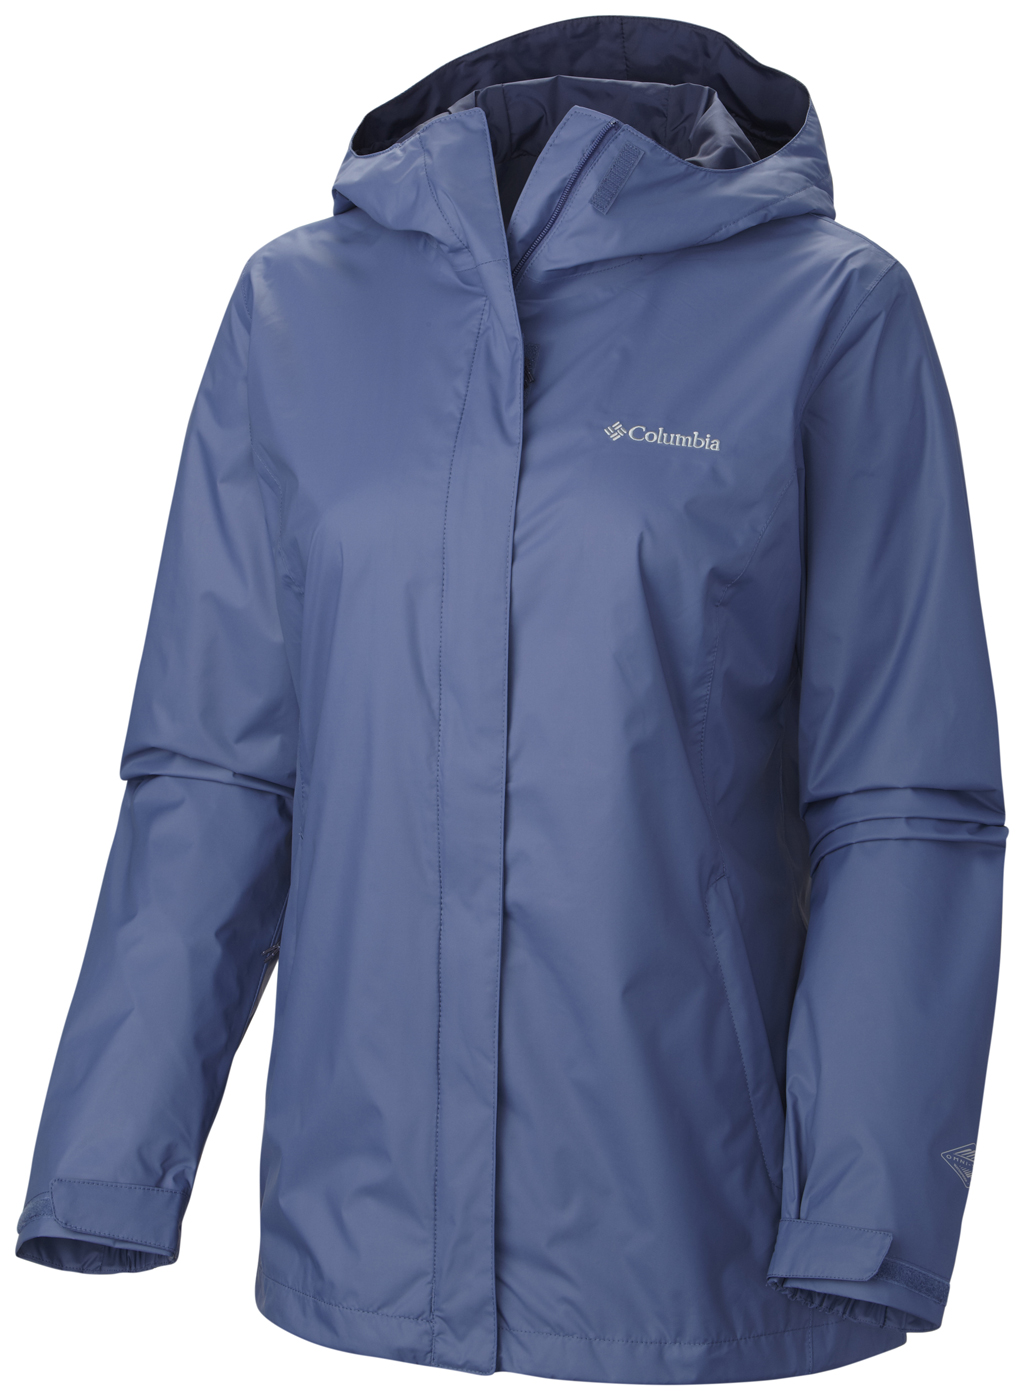 Columbia womens rain jackets